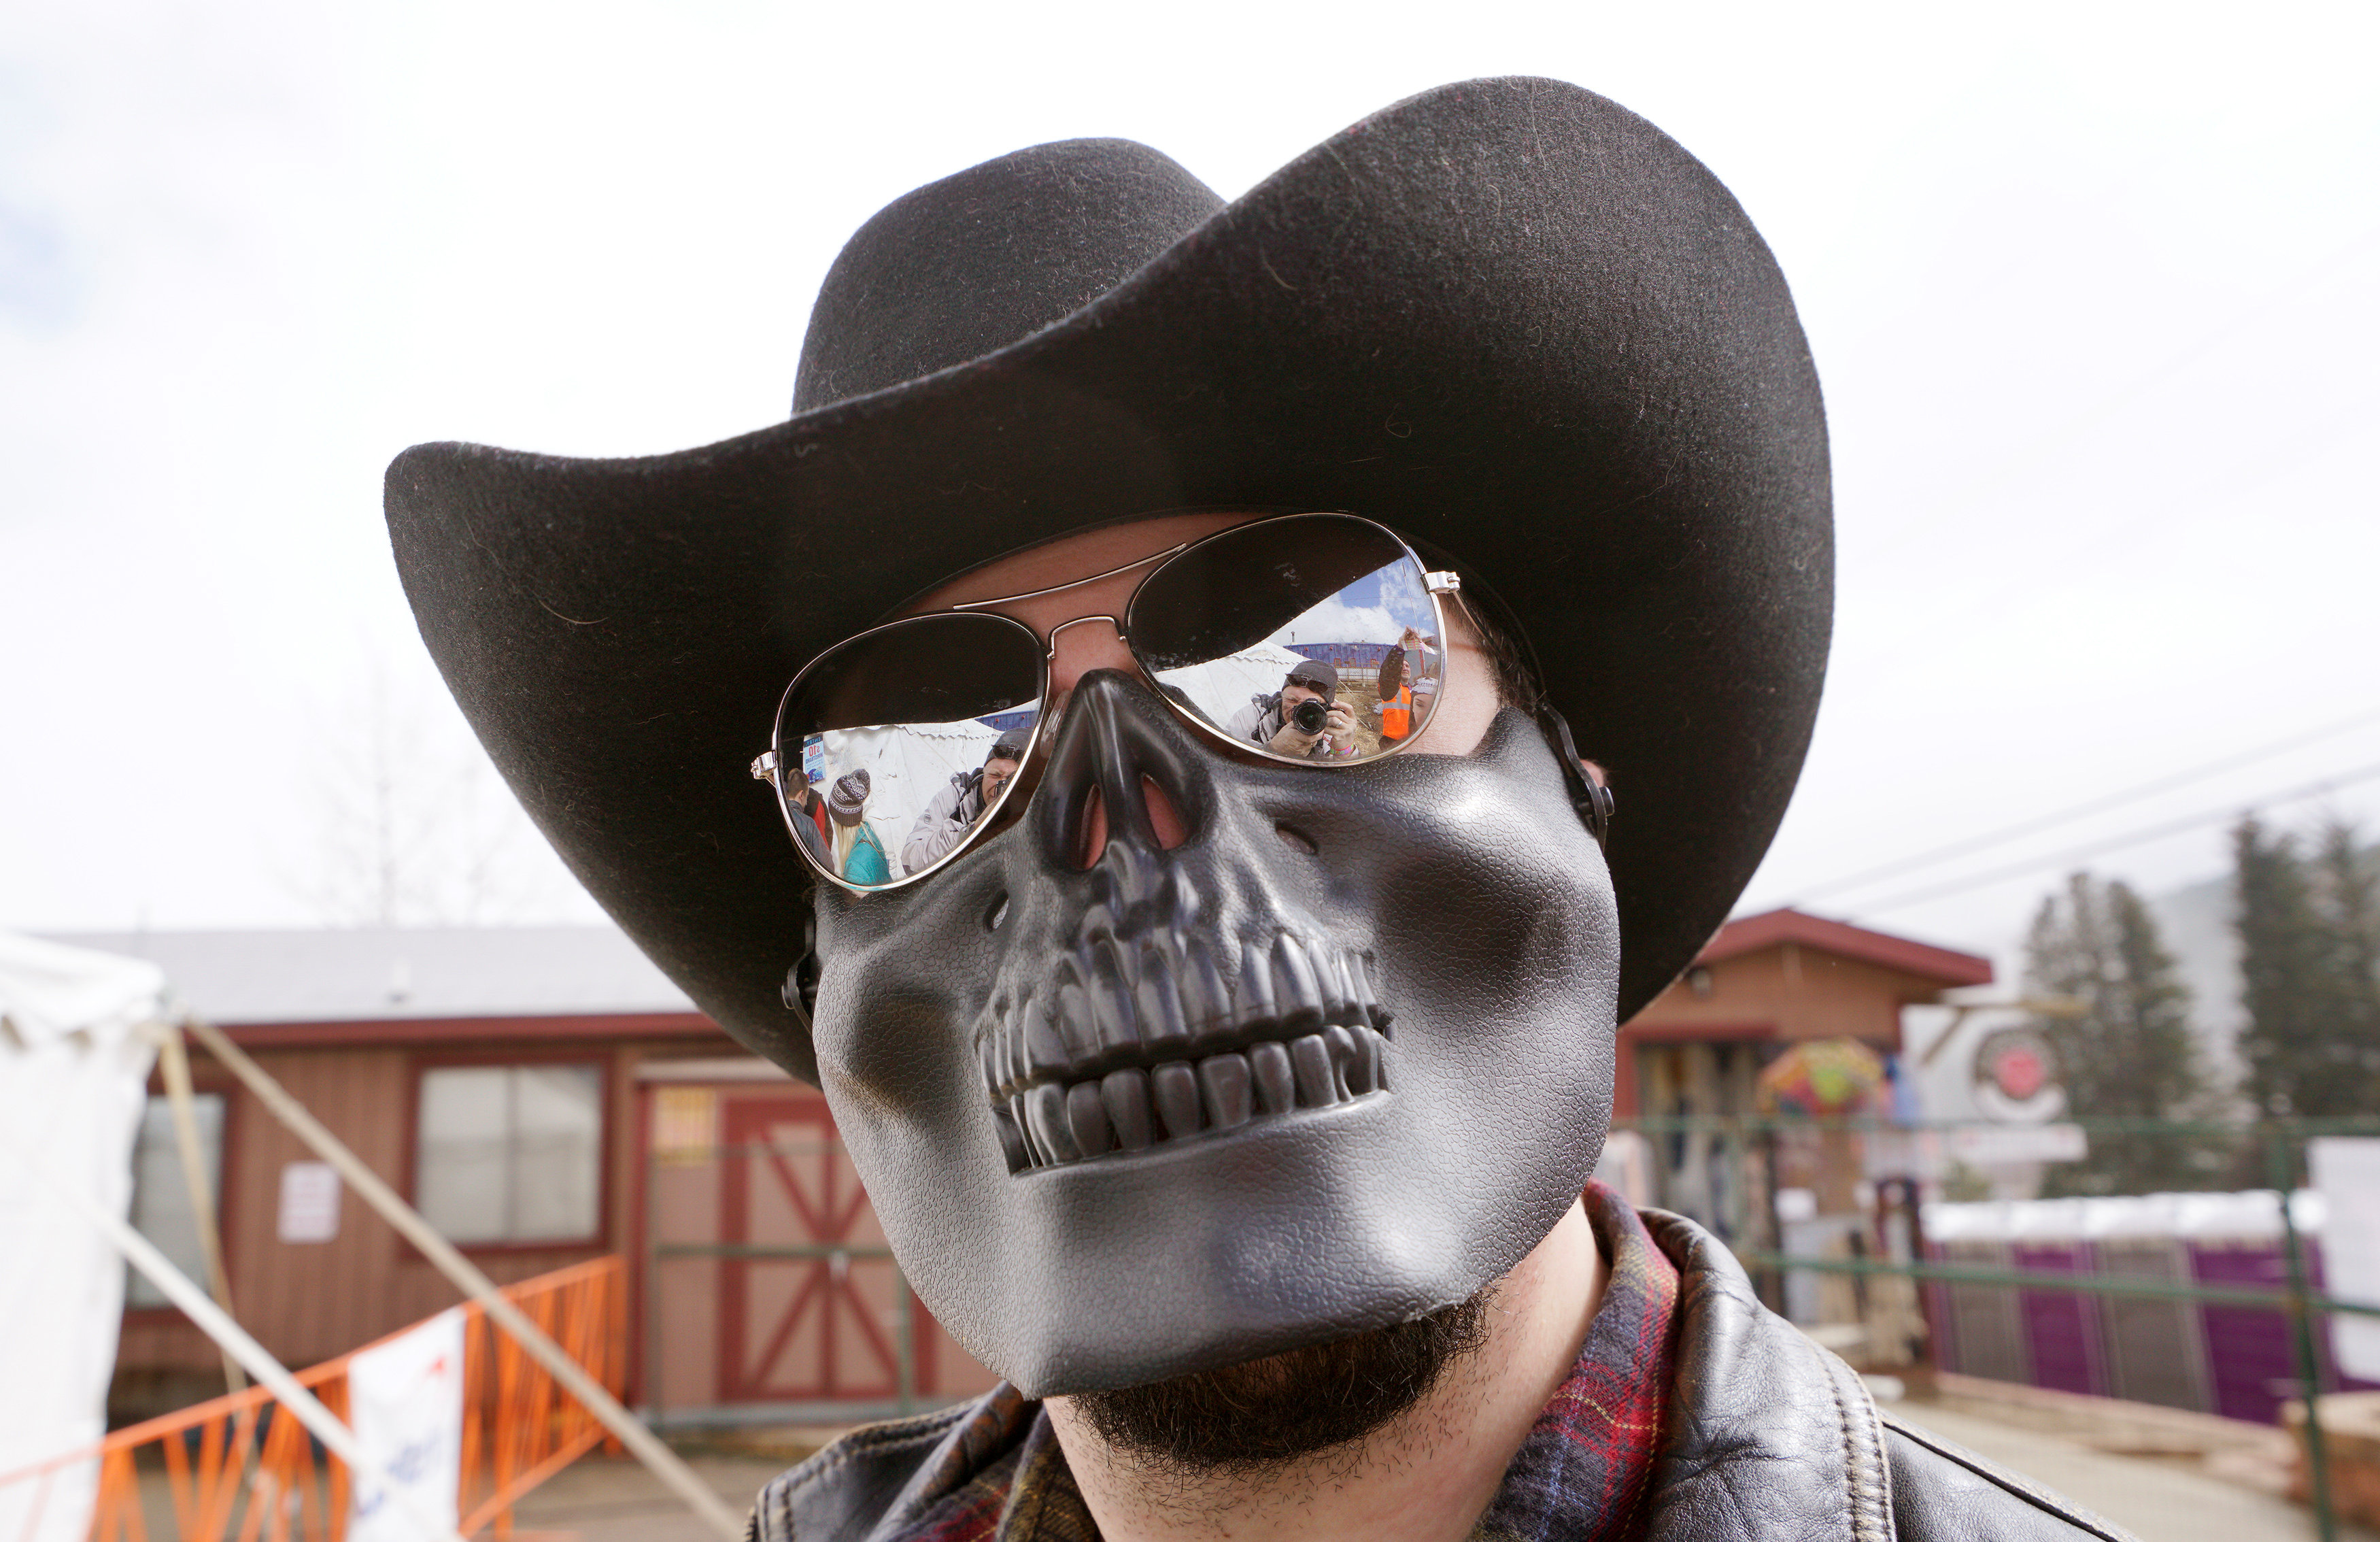 """A man poses in a skeleton mask at  the annual """"Frozen Dead Guy Days"""" festival in Nederland, Colorado, U.S., March 11, 2017. REUTERS/Rick Wilking"""